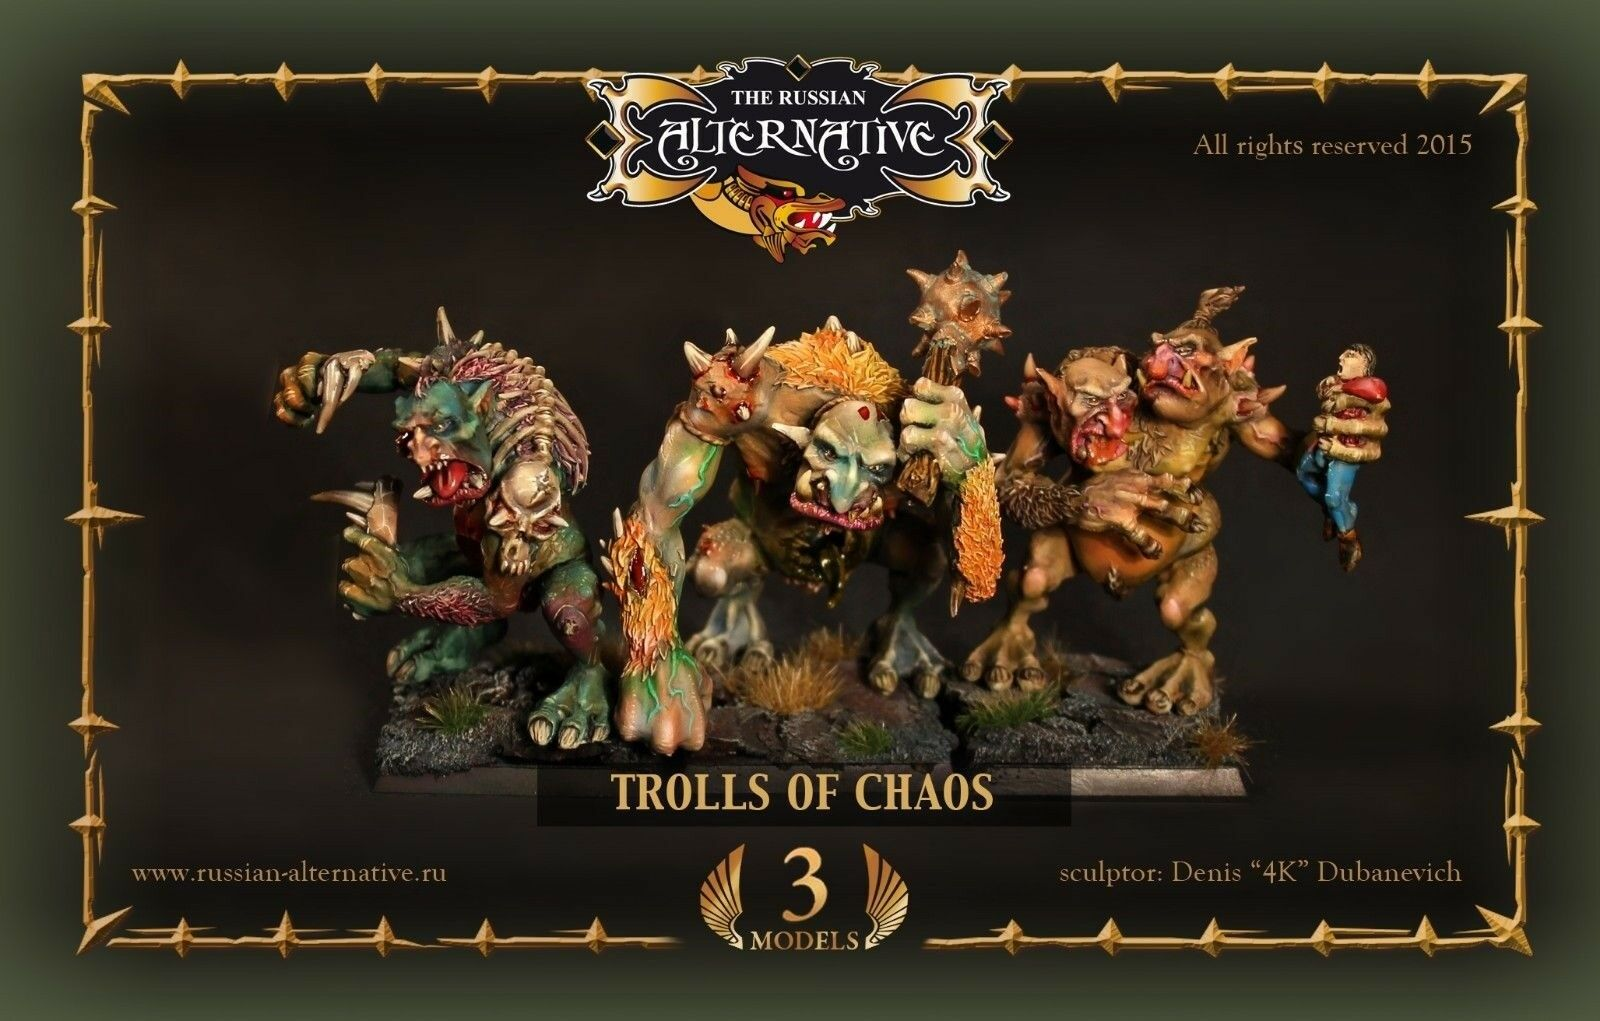 Trolls of Chaos Russian Alternative RESIN